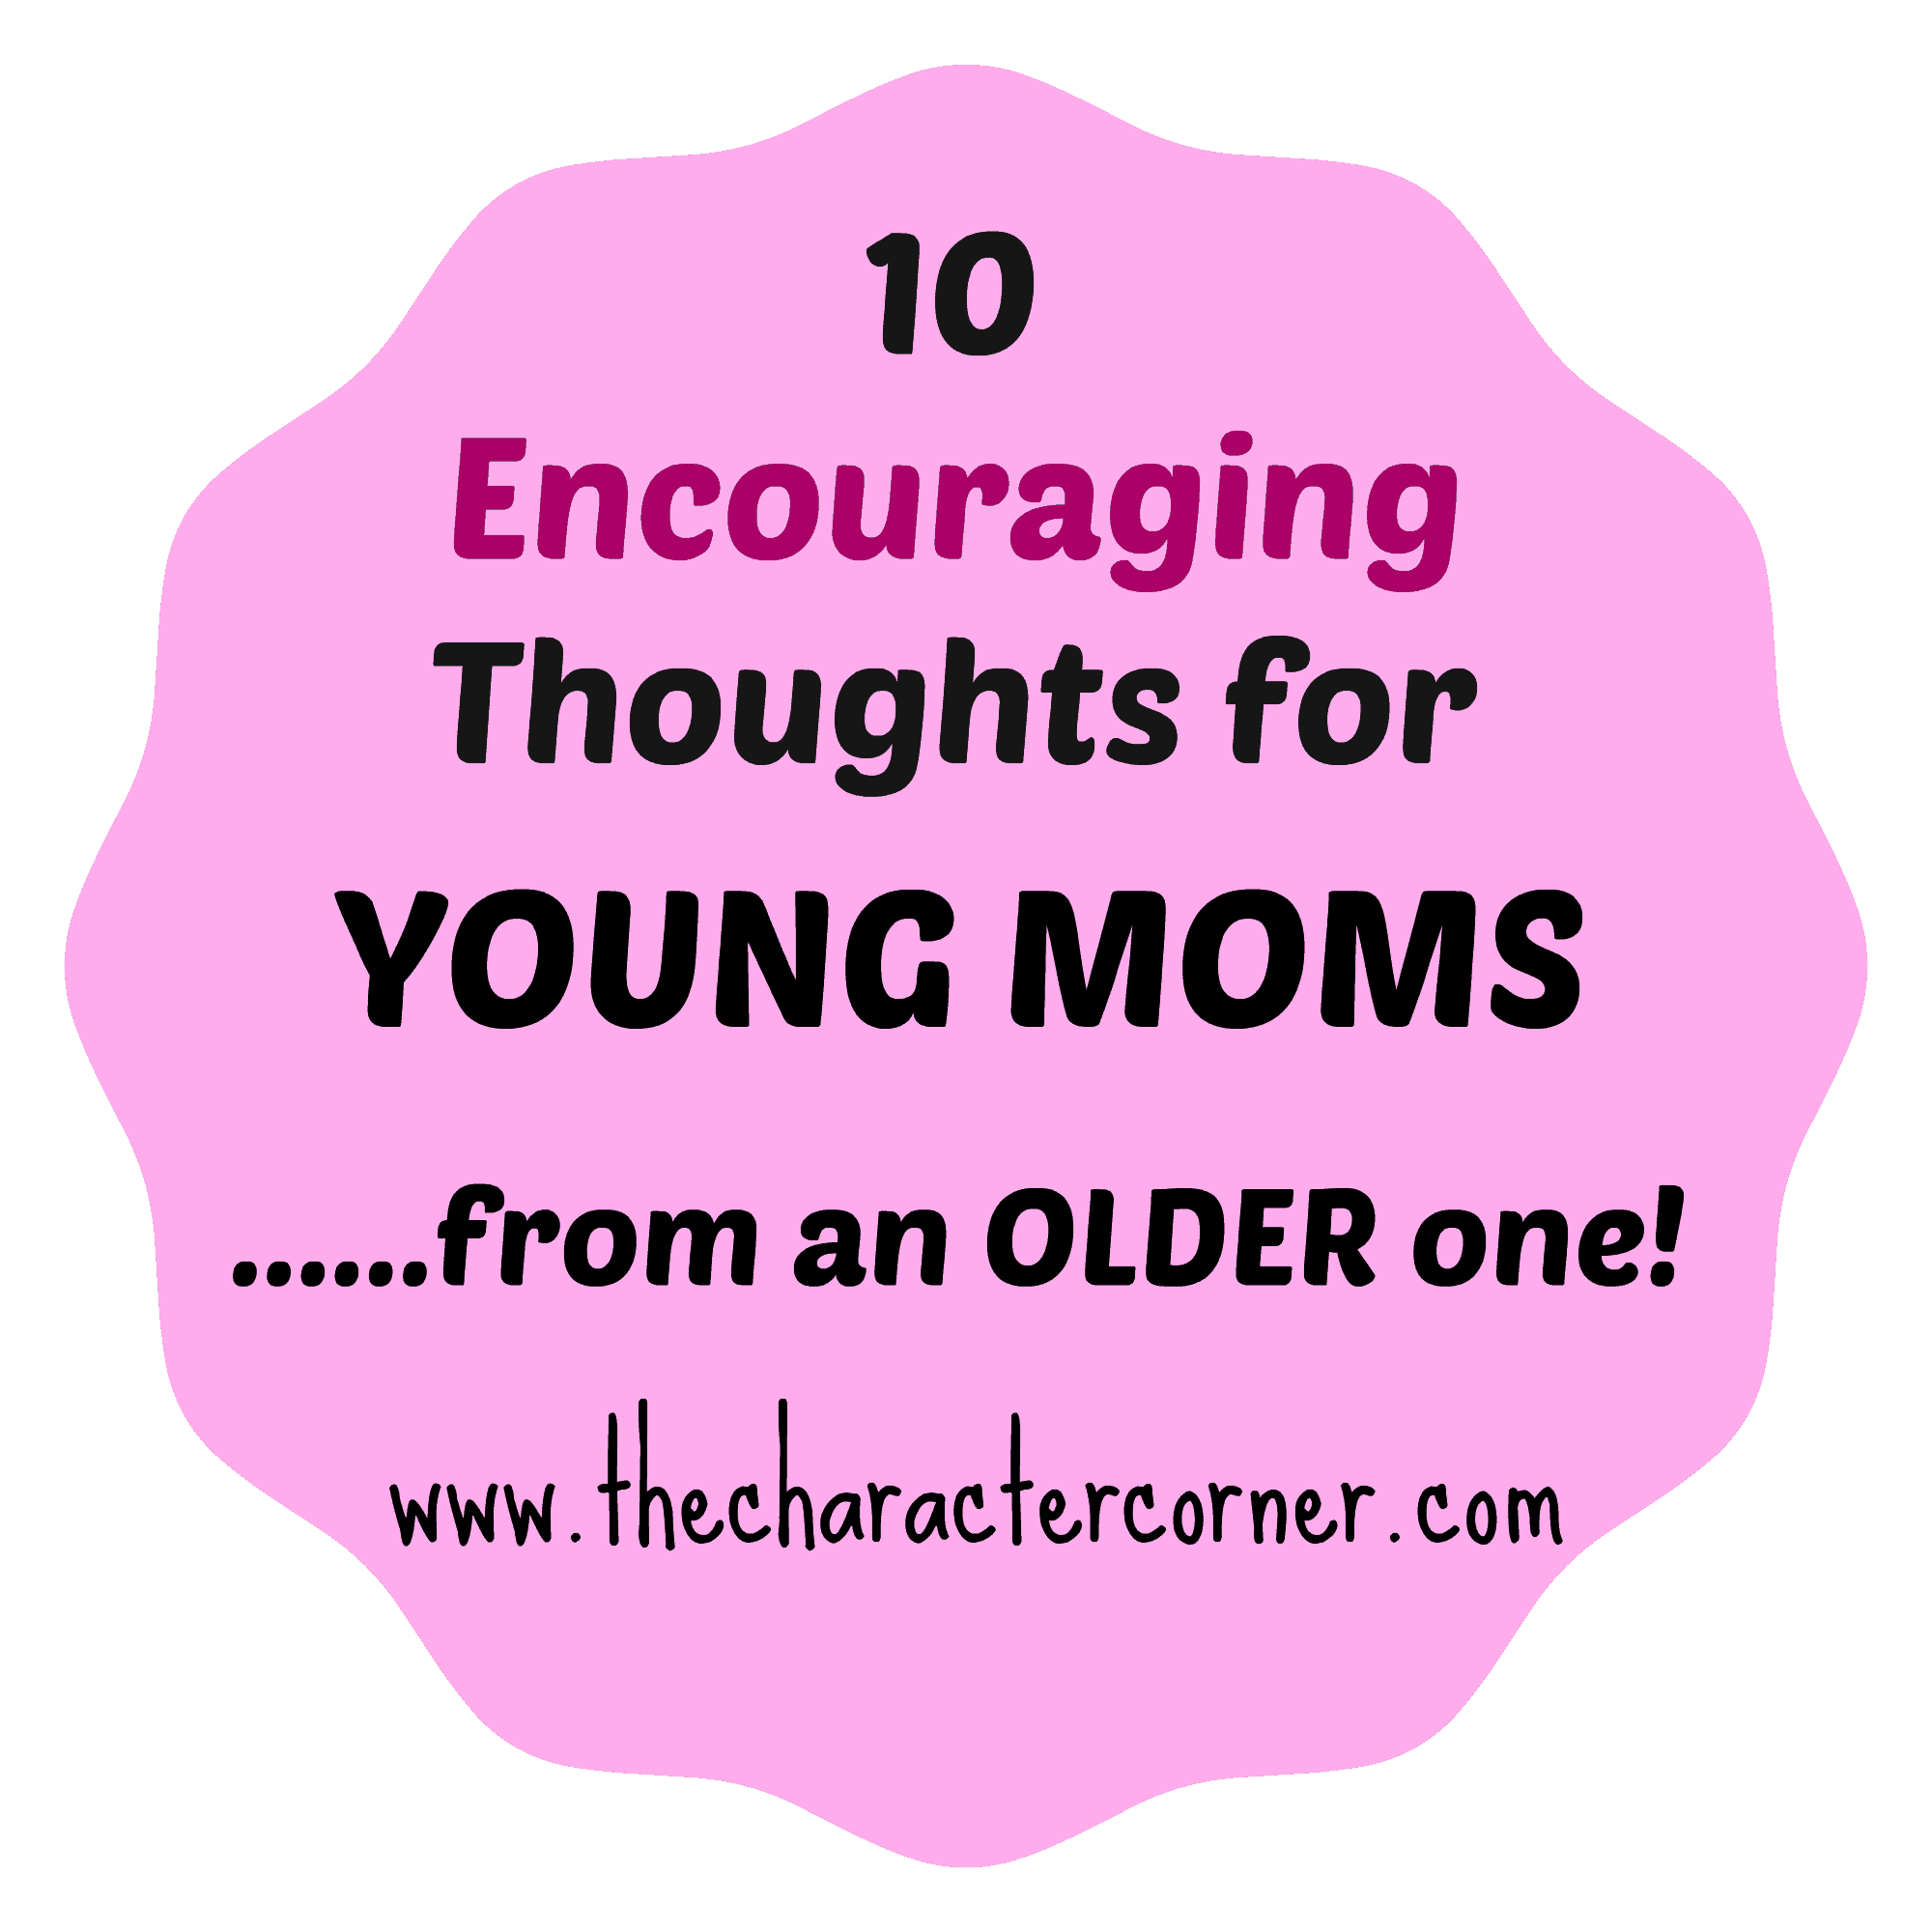 Guest Post} 10 Encouraging Thoughts for Young Moms from an